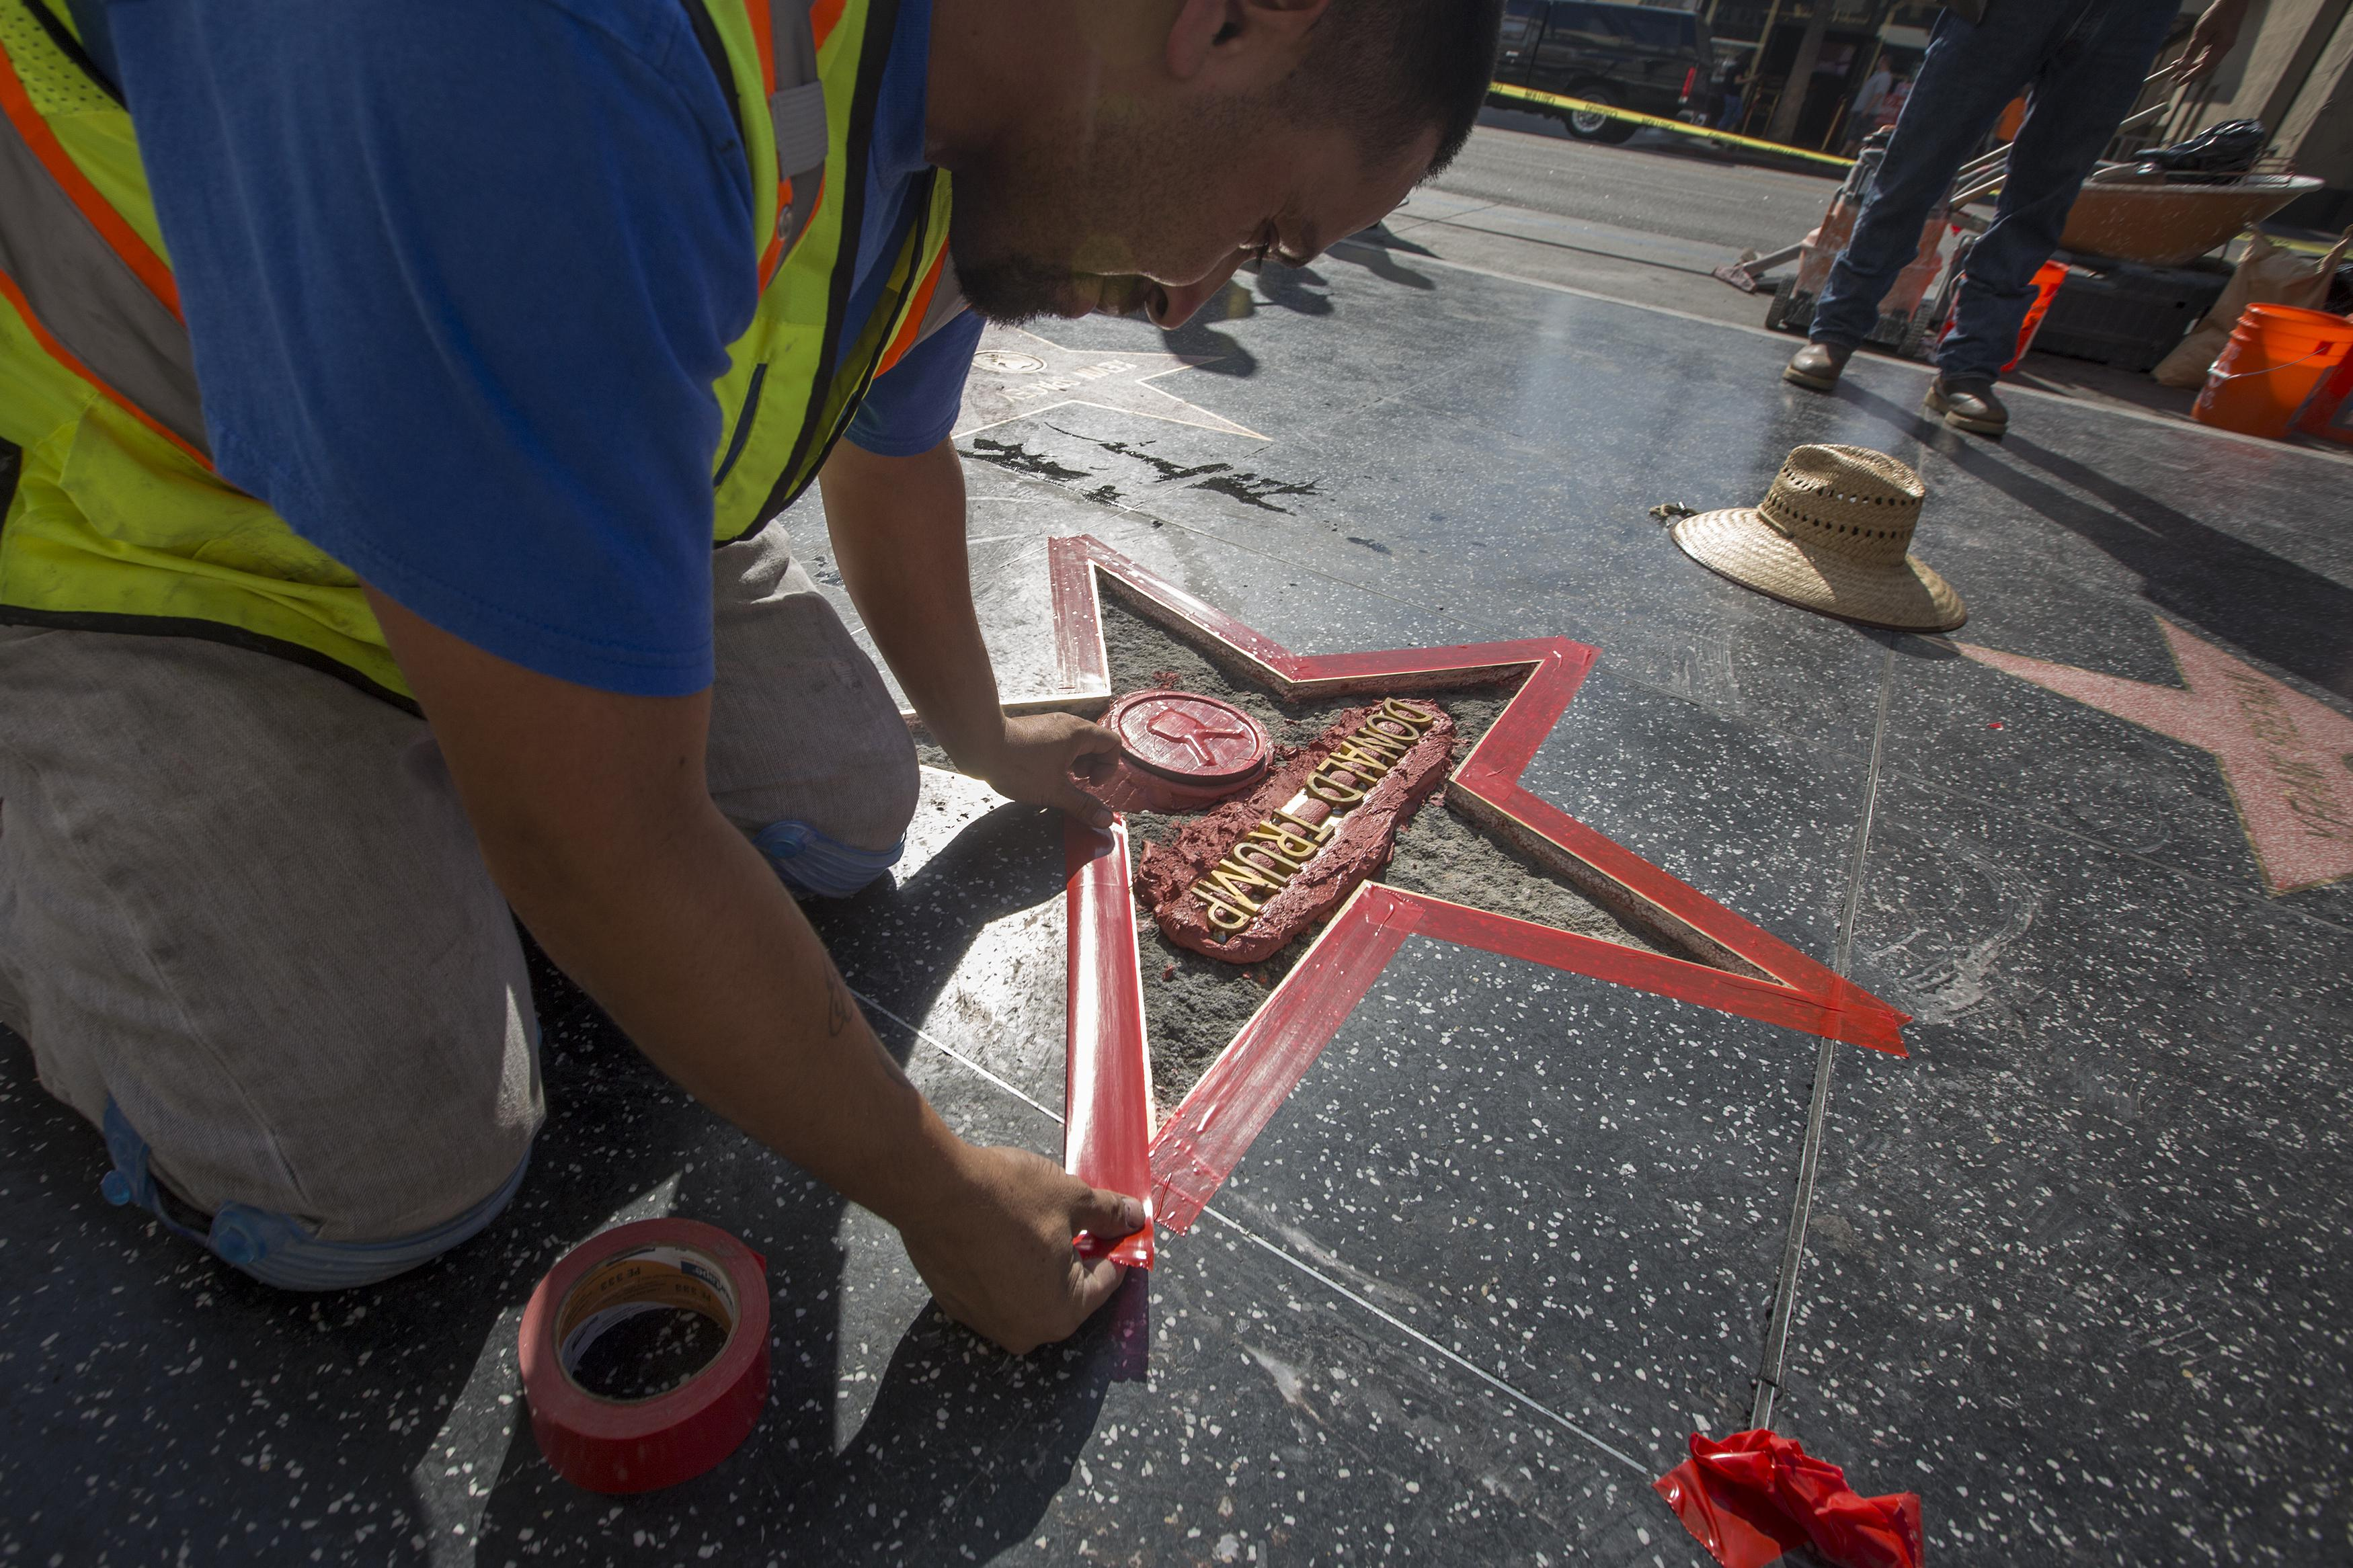 A worker repairs Donald Trump's star on the Walk of Fame.